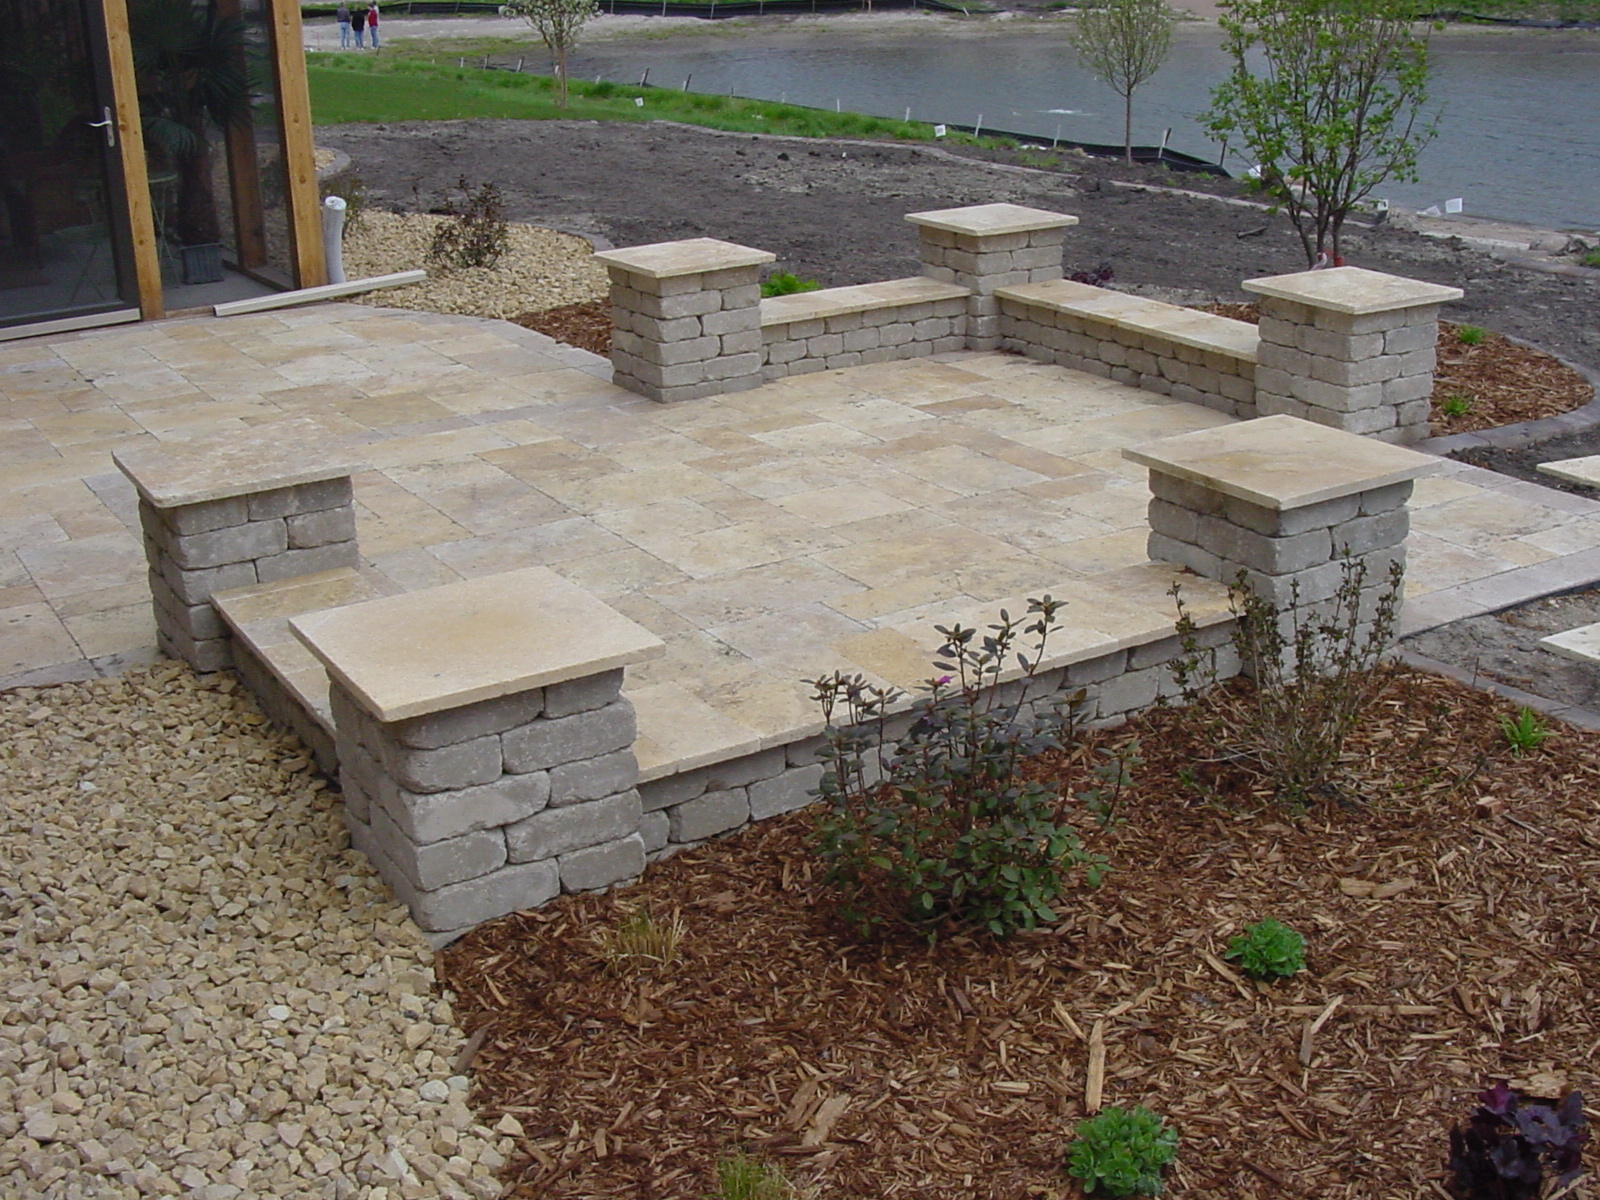 Minneapolis Landscape Brick And Stone Patio Design Ideas Paving - Stone patio design